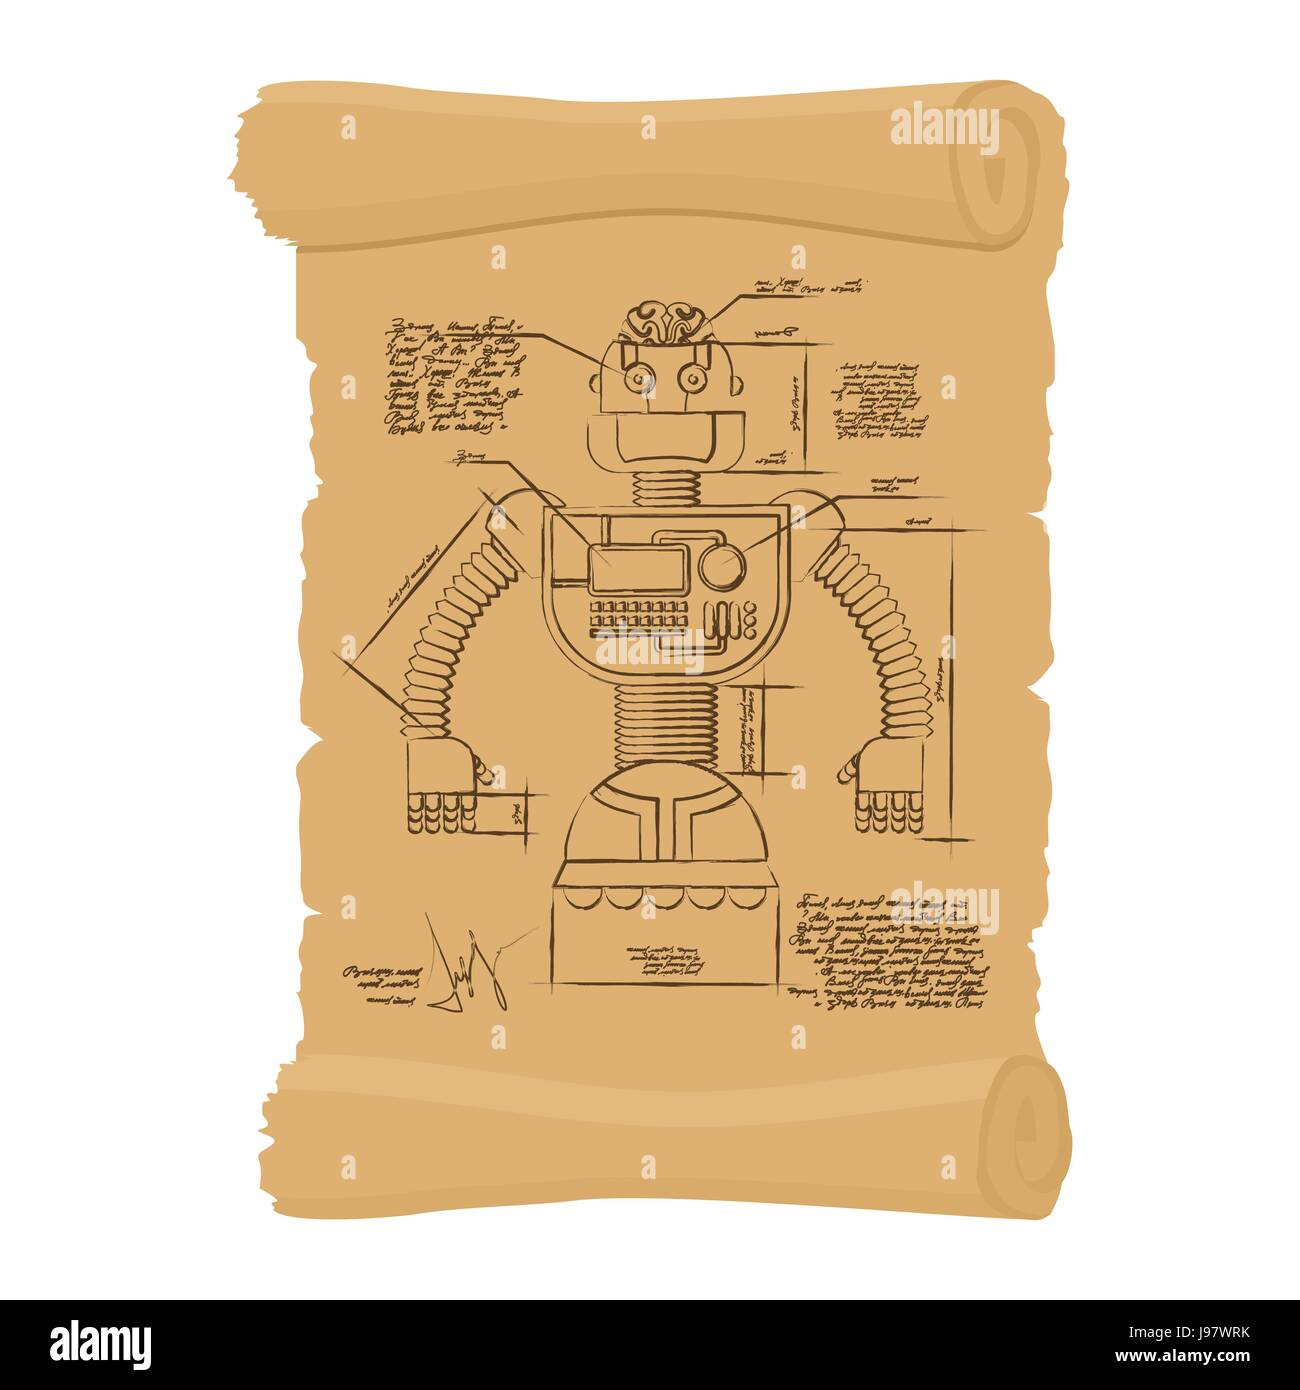 Cyborg Diagram Invention Nice Place To Get Wiring Ozonegeneratorcircuitdiagram Another Files